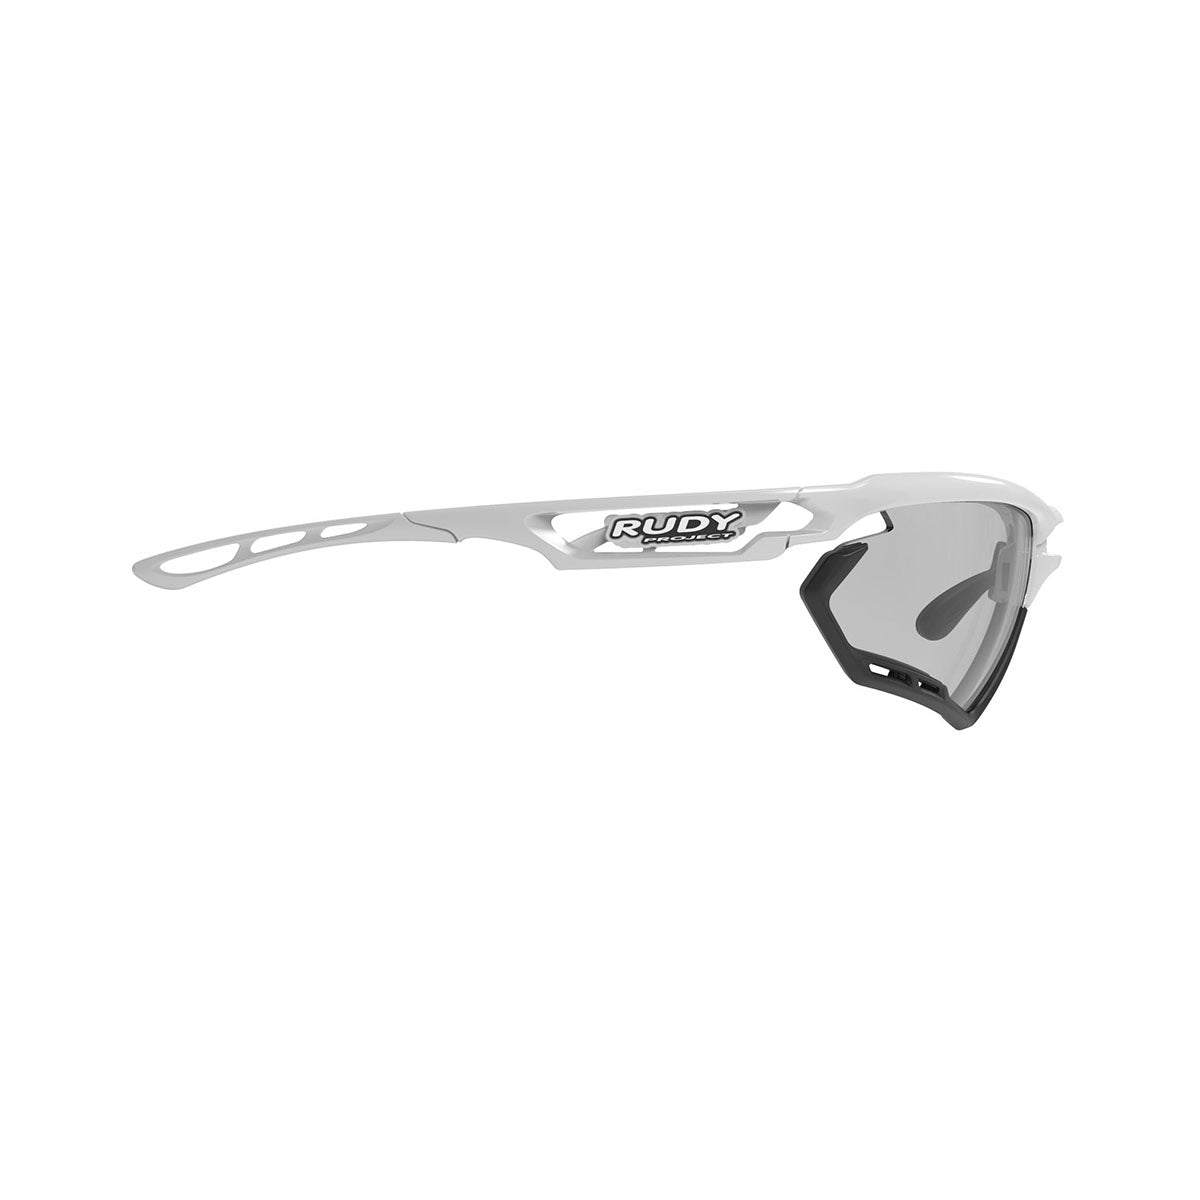 Rudy Project - Fotonyk - frame color: White Gloss - lens color: ImpactX-2 Photochromic Clear to Black - Bumper Color: Black - photo angle: Side Variant Hover Image